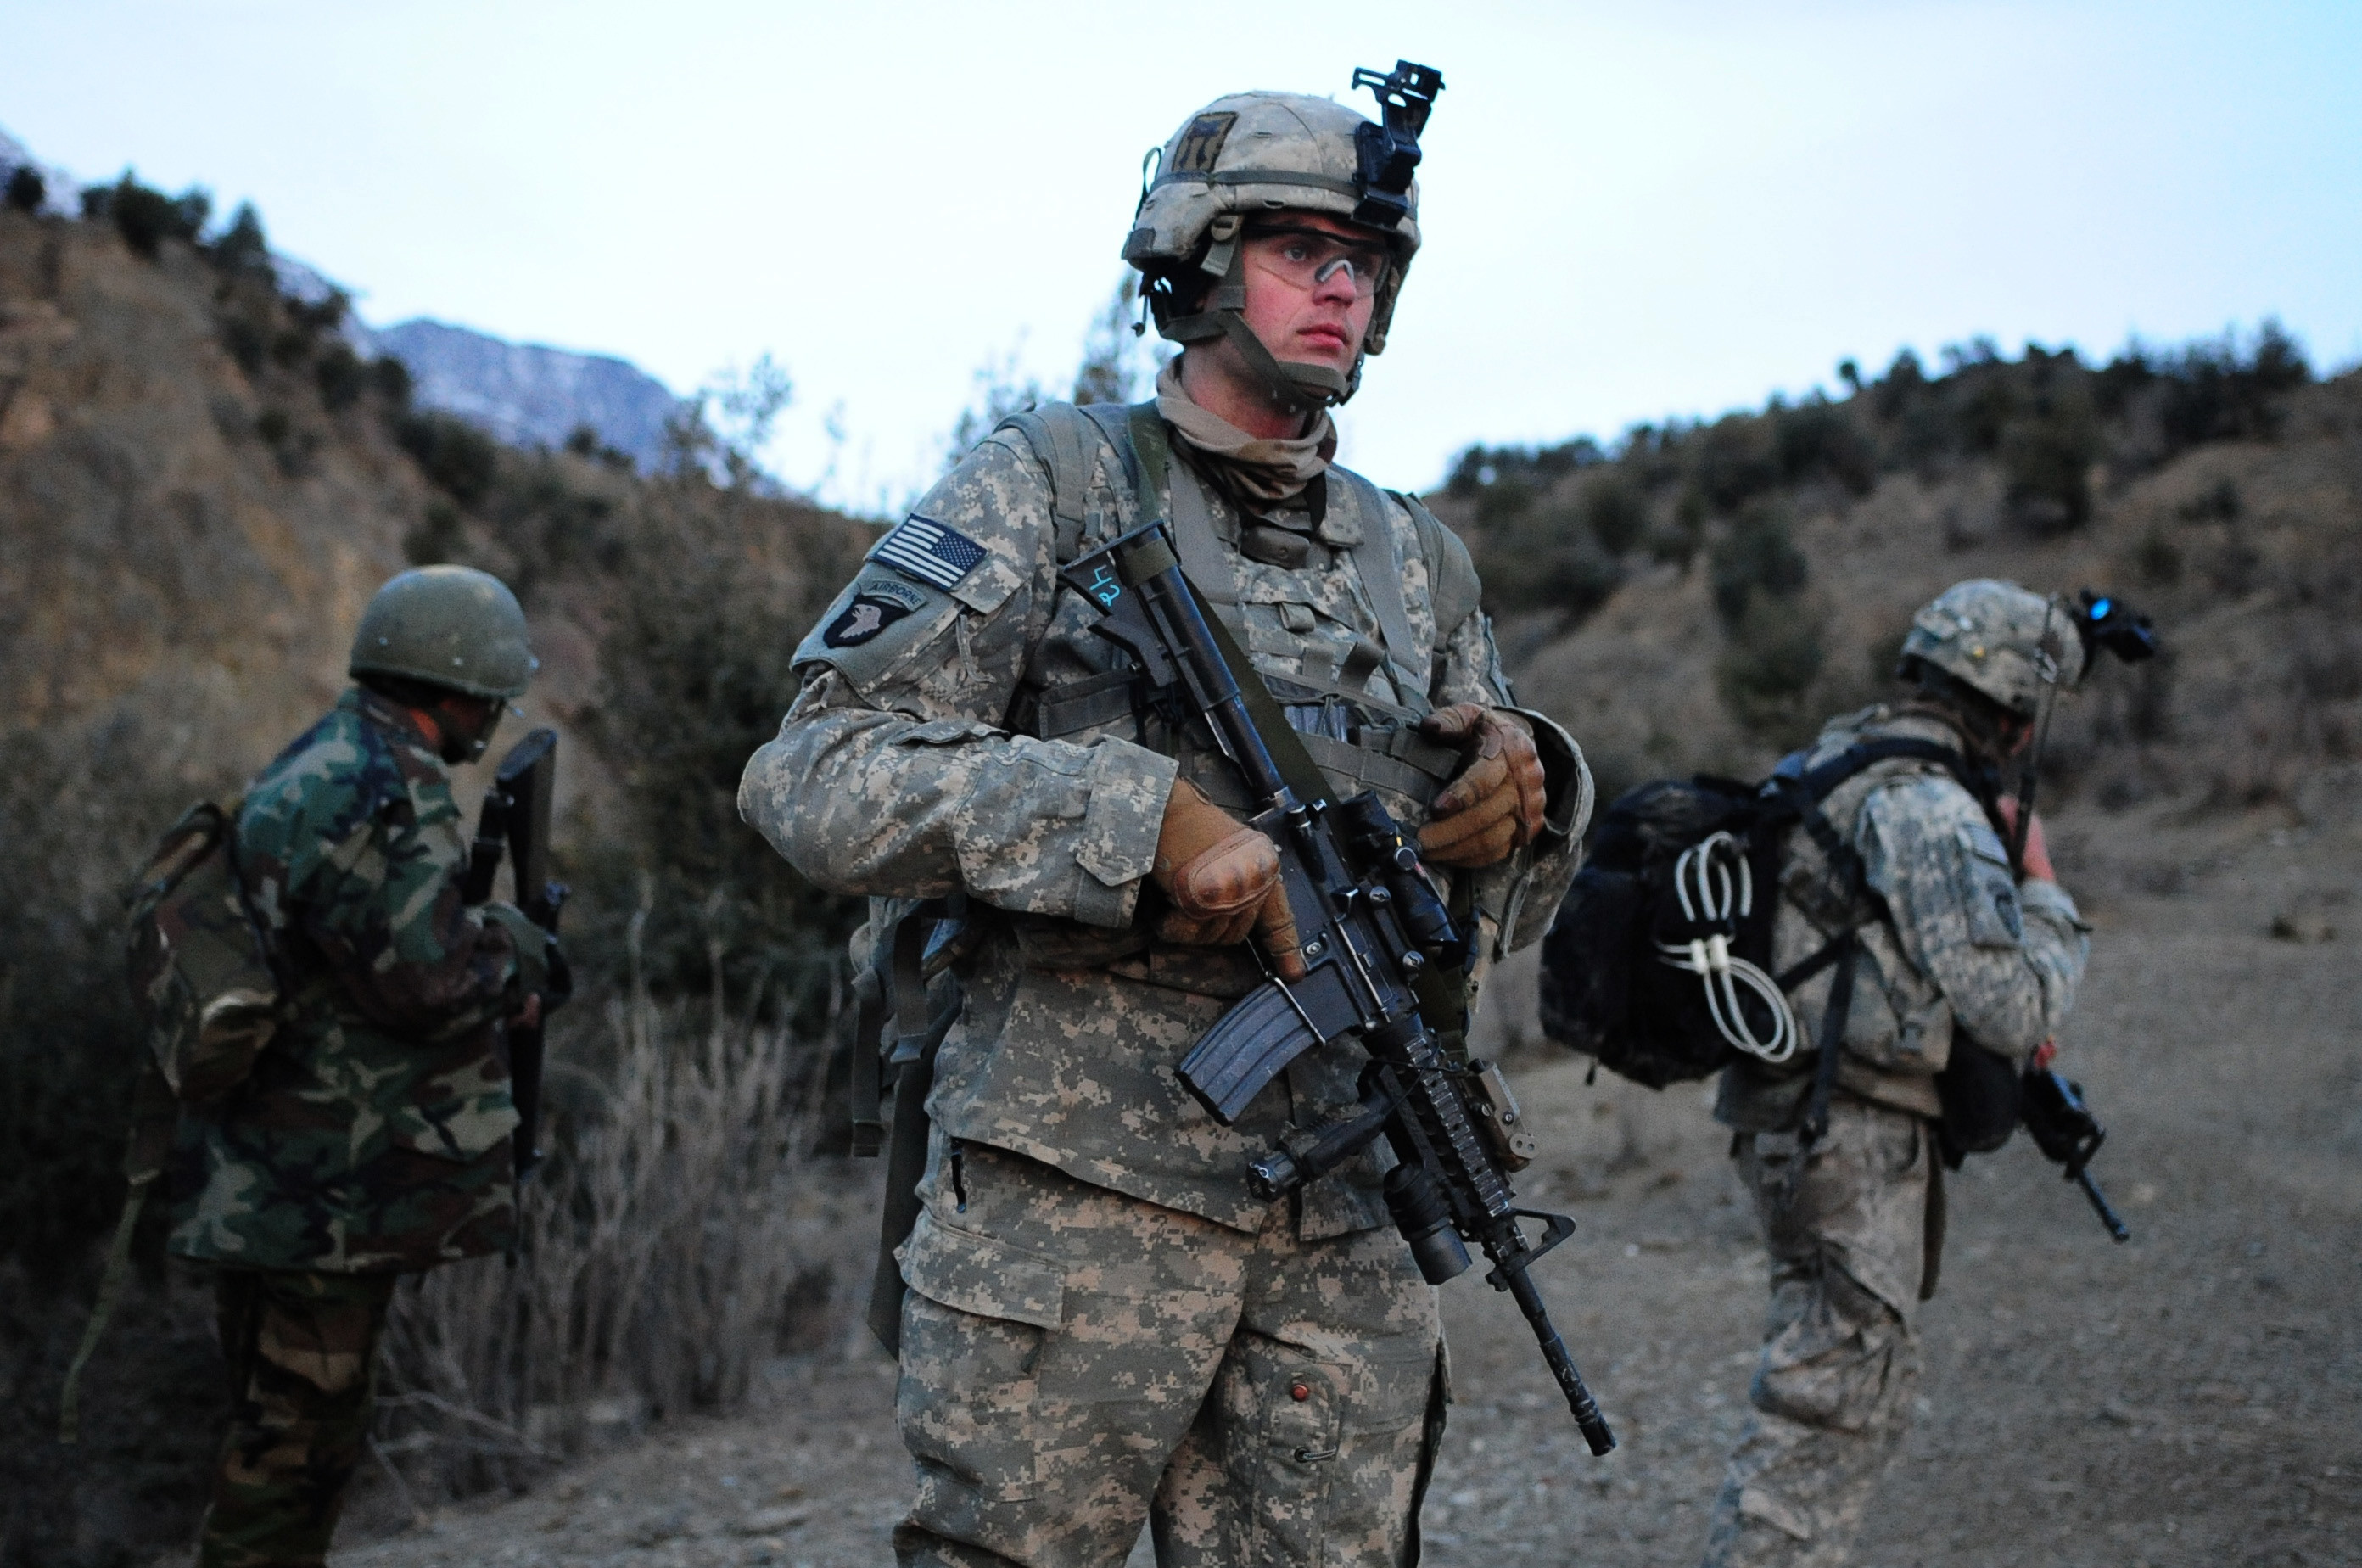 us military gear The United States Army Special Forces …